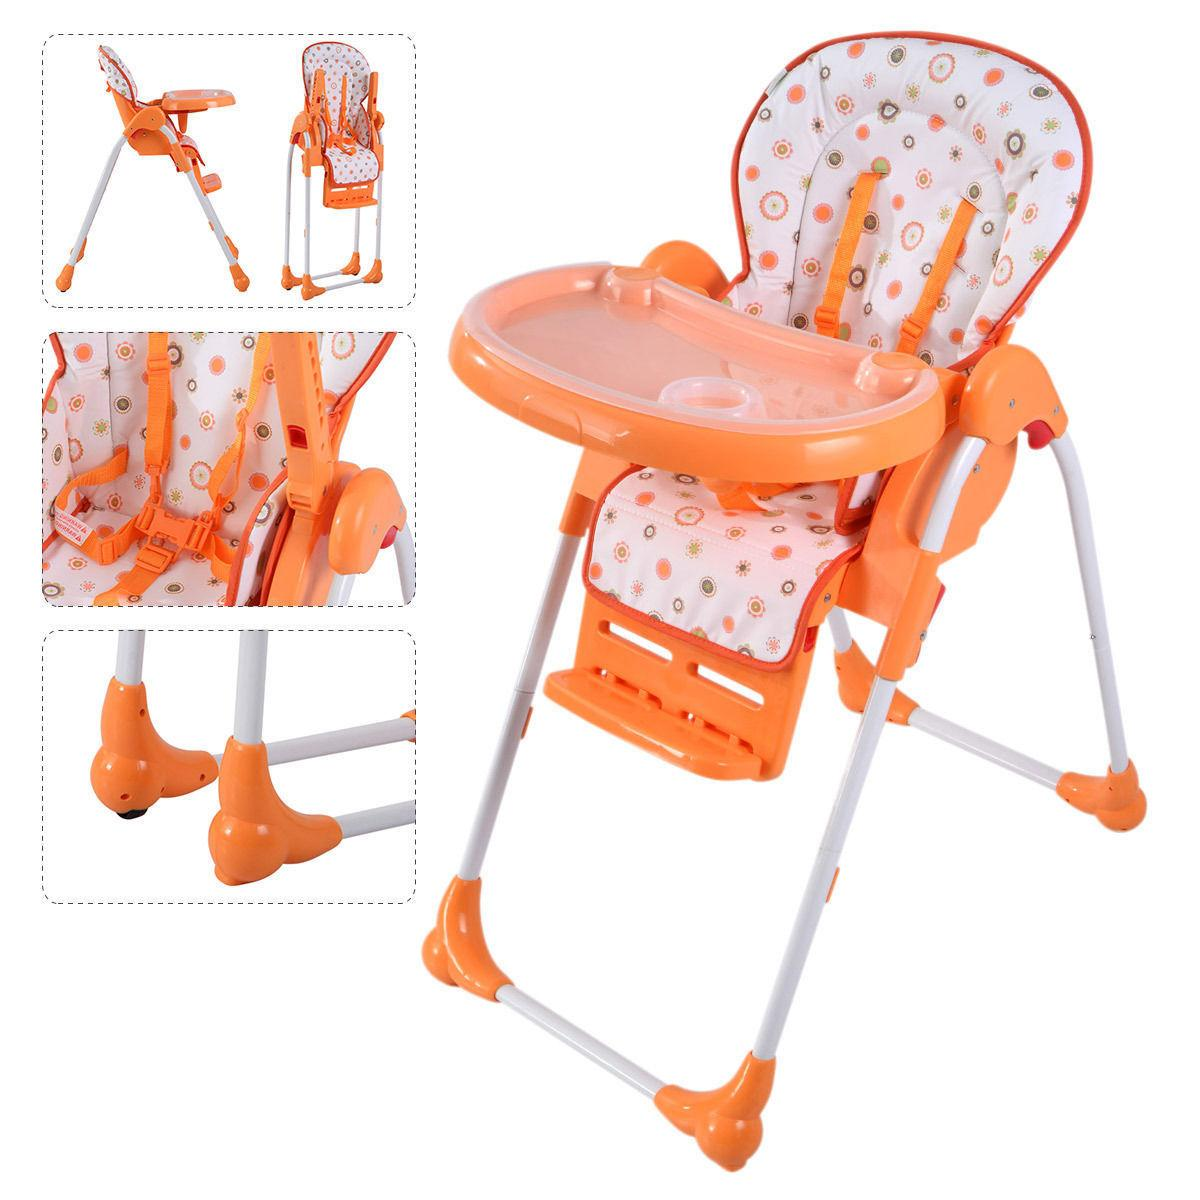 Adjustable Infant Toddler Feeding Seat 4 Colors